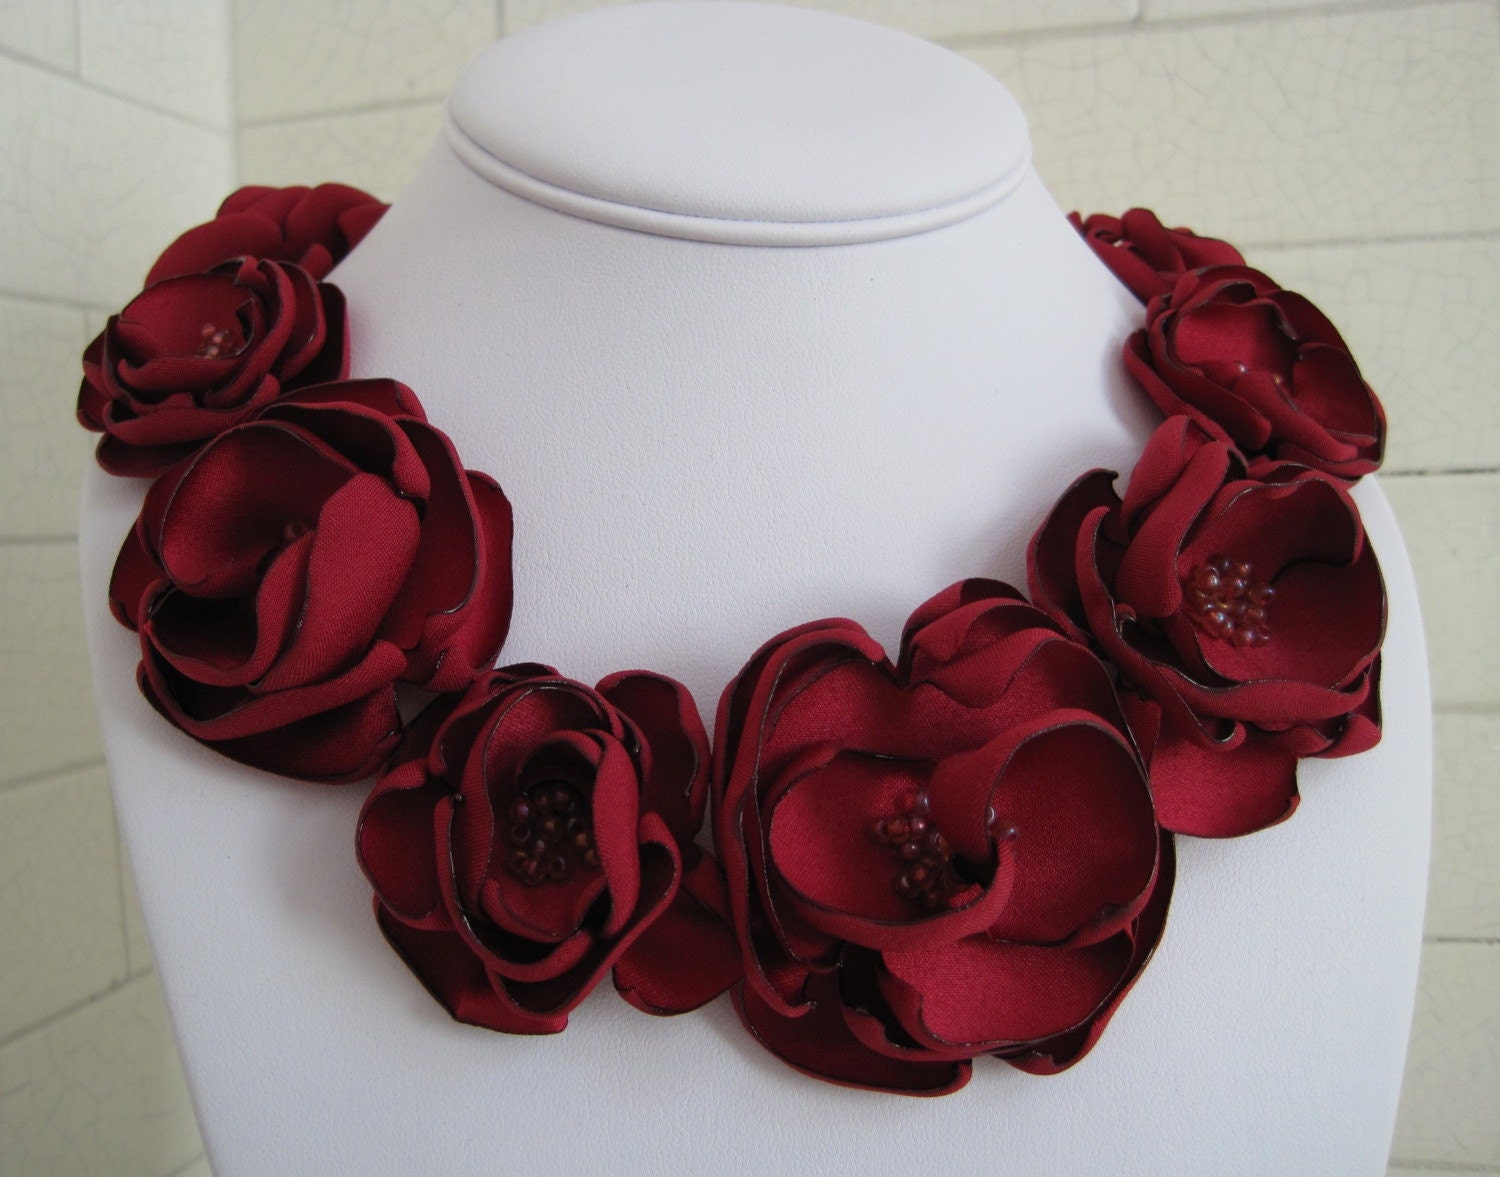 made to order - PAMELA  - scarlet red satin and czech glass bead fabric flower necklace with ribbon tie